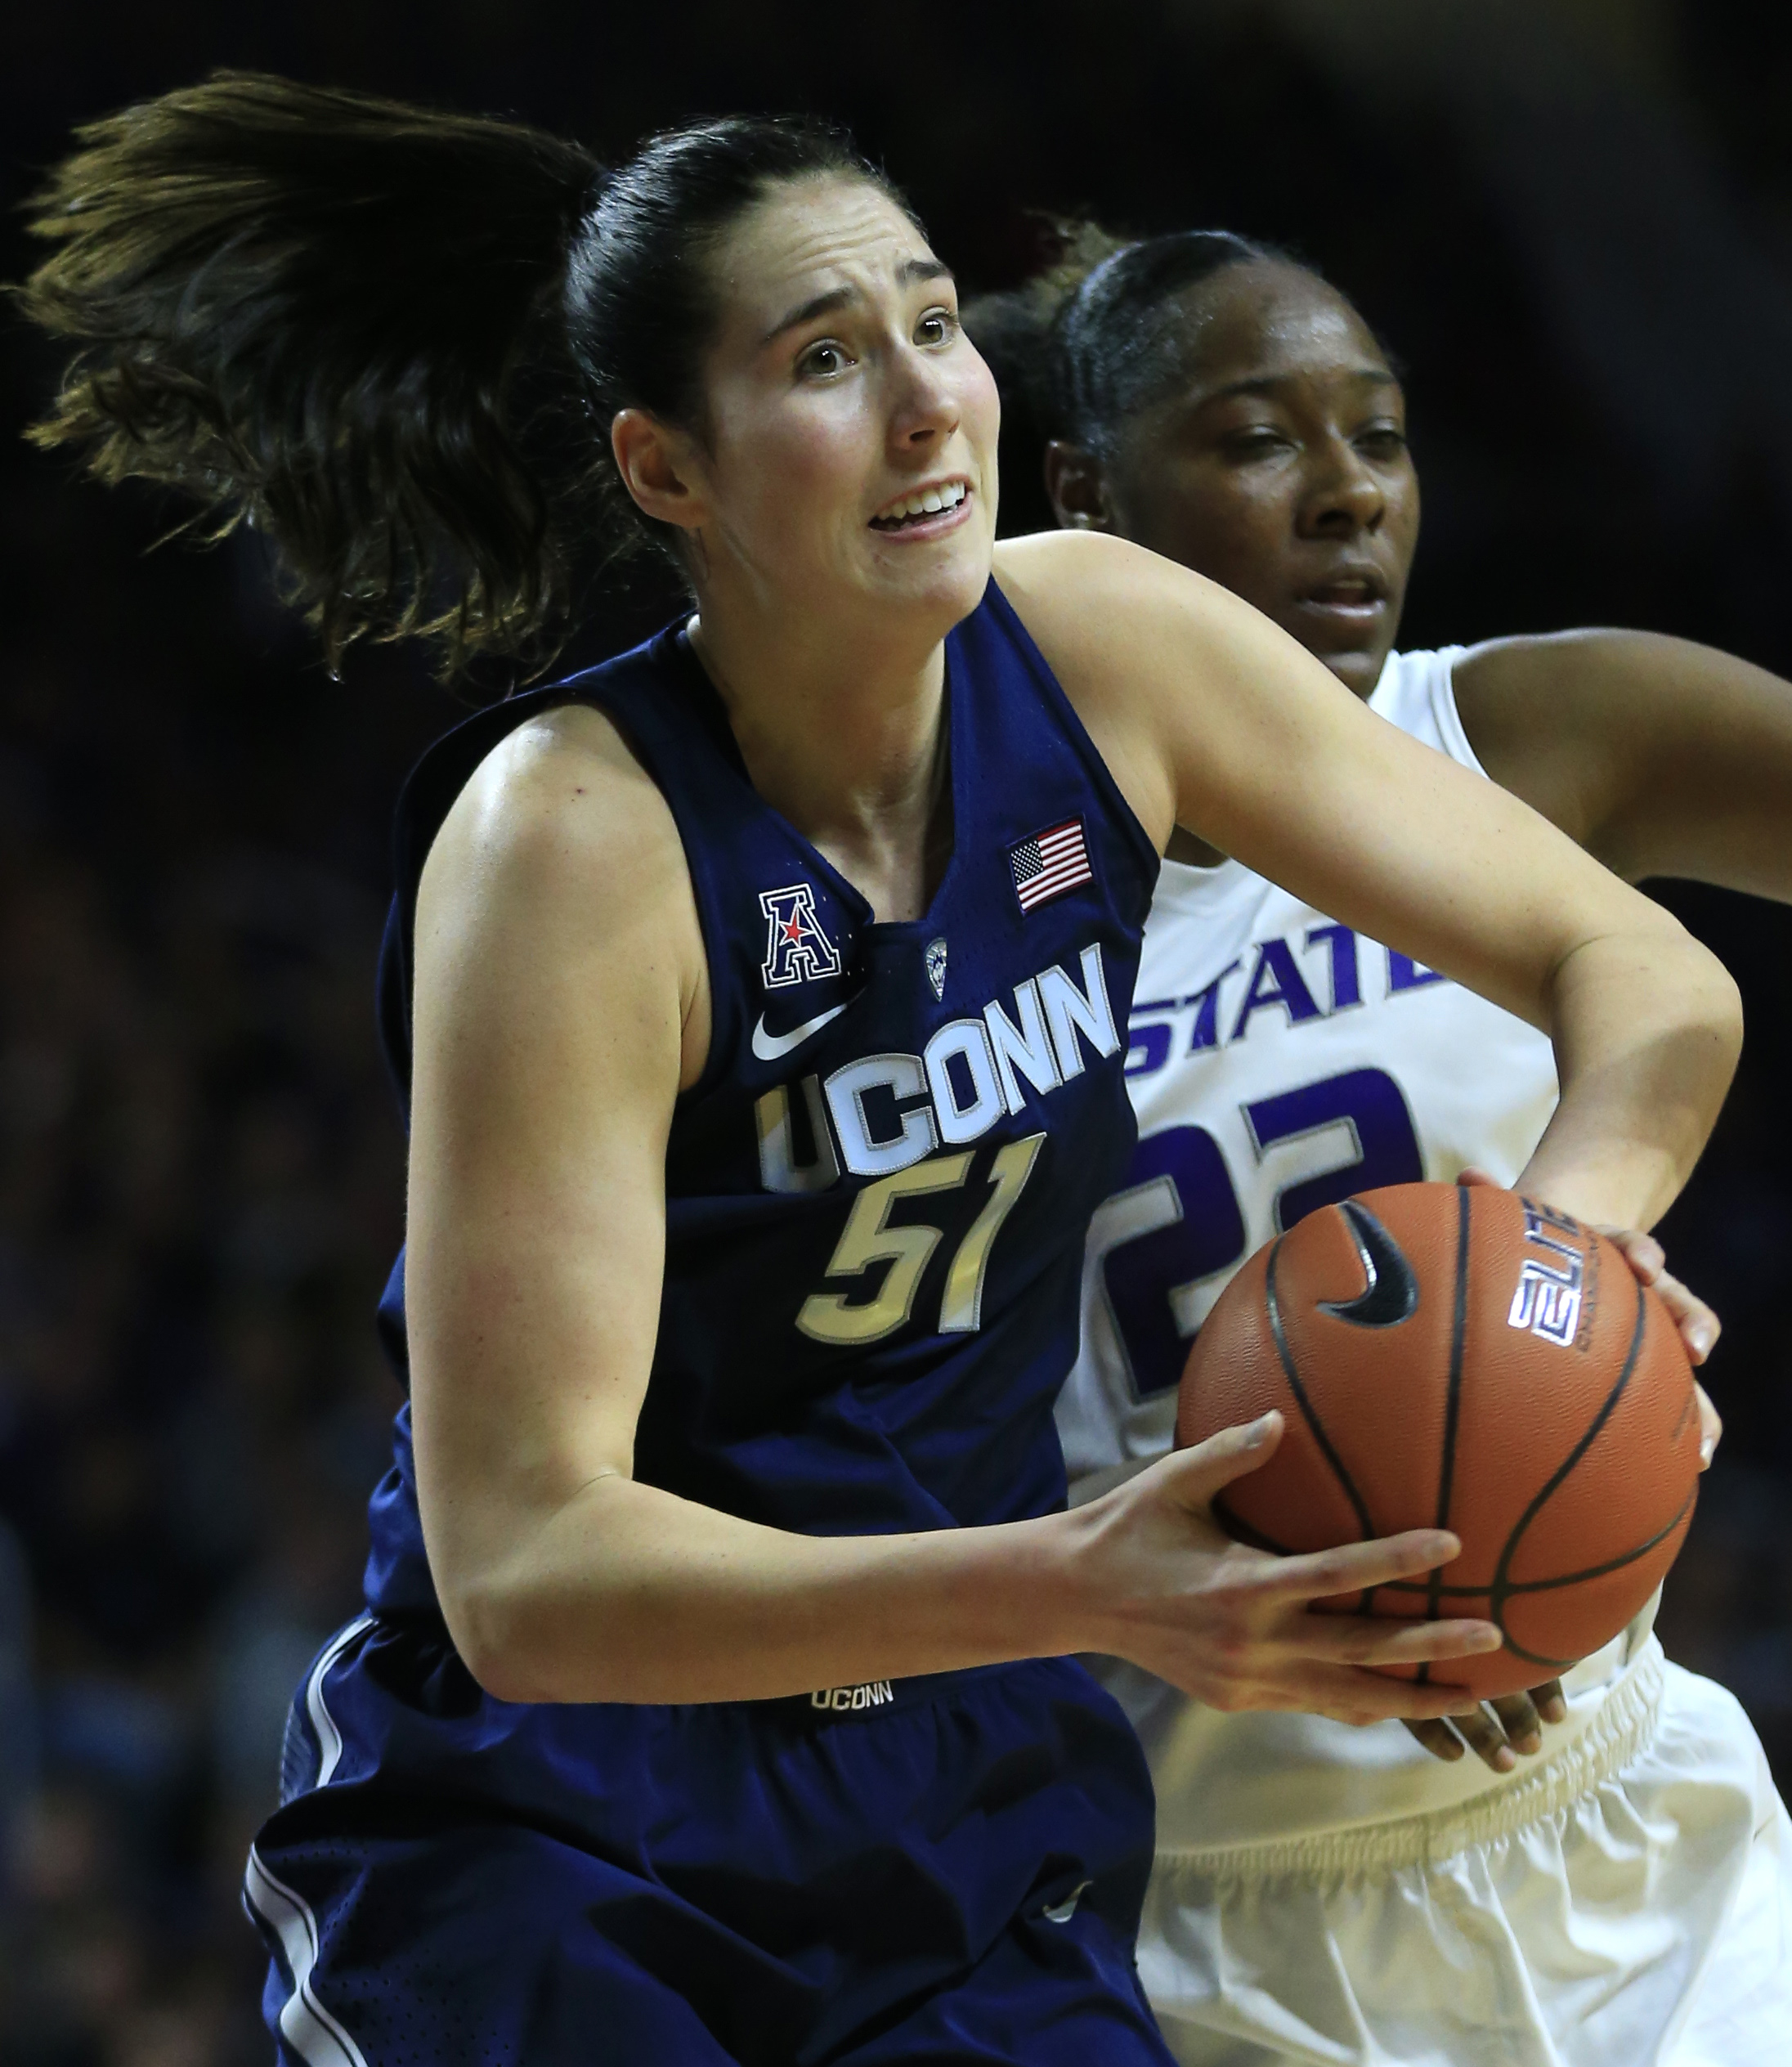 Connecticut center Natalie Butler (51) rebounds in front of Kansas State forward Breanna Lewis (22) during the first half of an NCAA college basketball game in Manhattan, Kan., Sunday, Dec. 11, 2016. (AP Photo/Orlin Wagner)